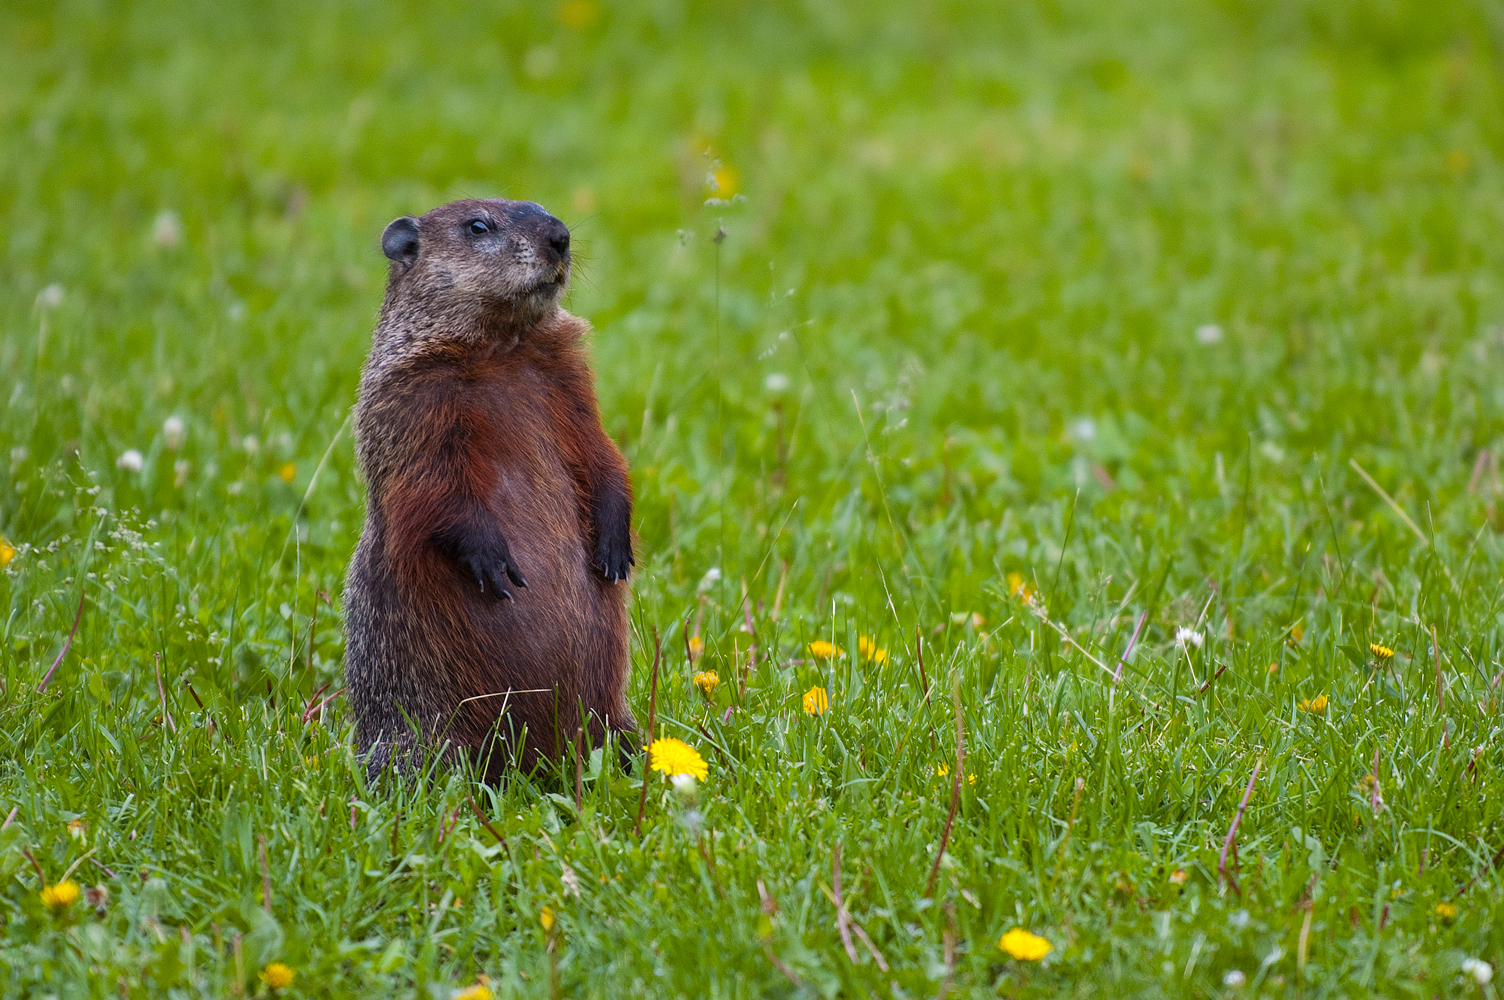 ground hog day promotion ideas